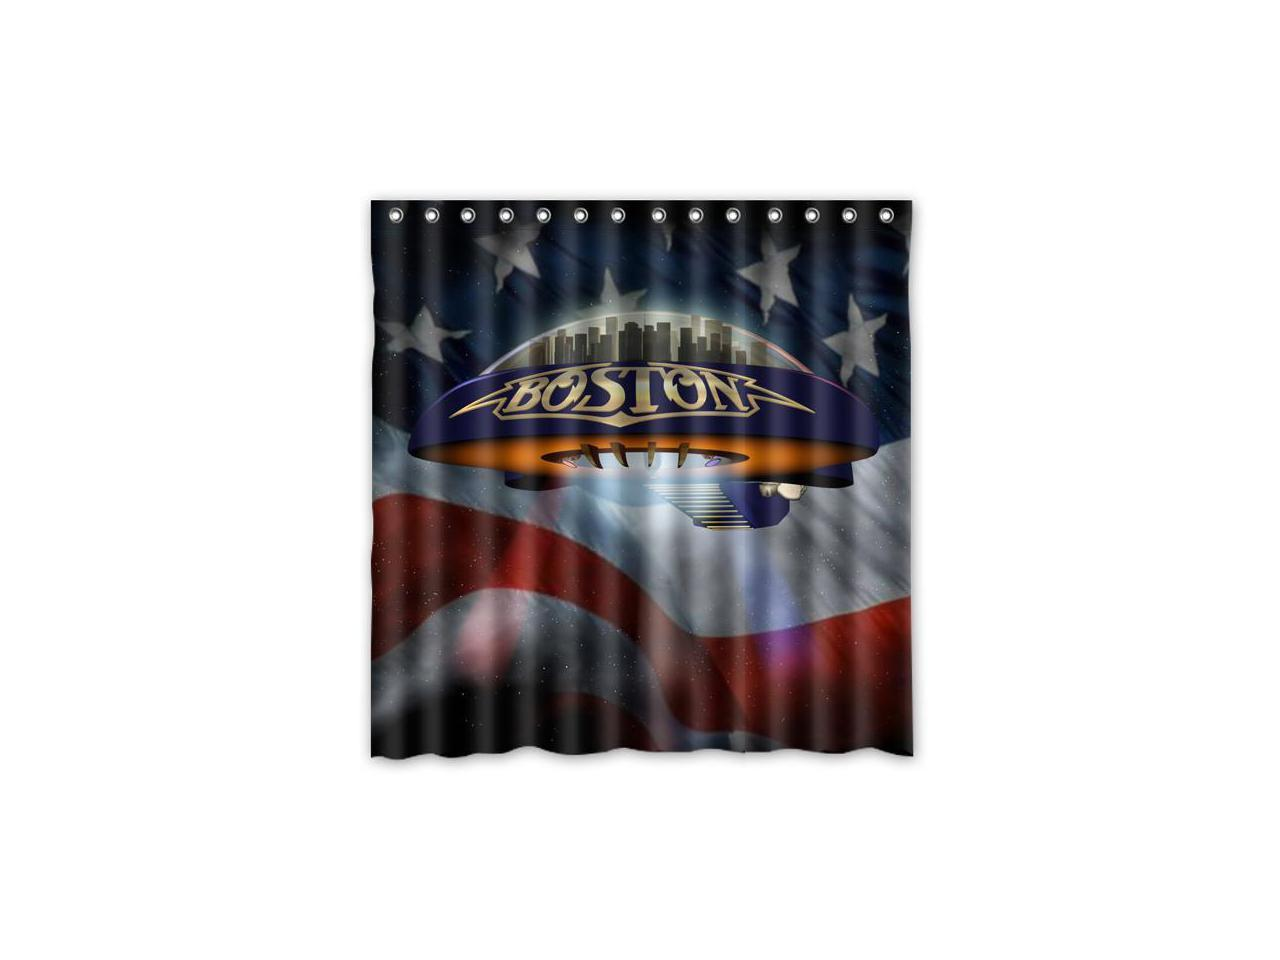 Picture of: Boston Rock Band Design Polyester Fabric Bath Shower Curtain 180×180 Cm Waterproof And Mildewproof Shower Curtains Newegg Com